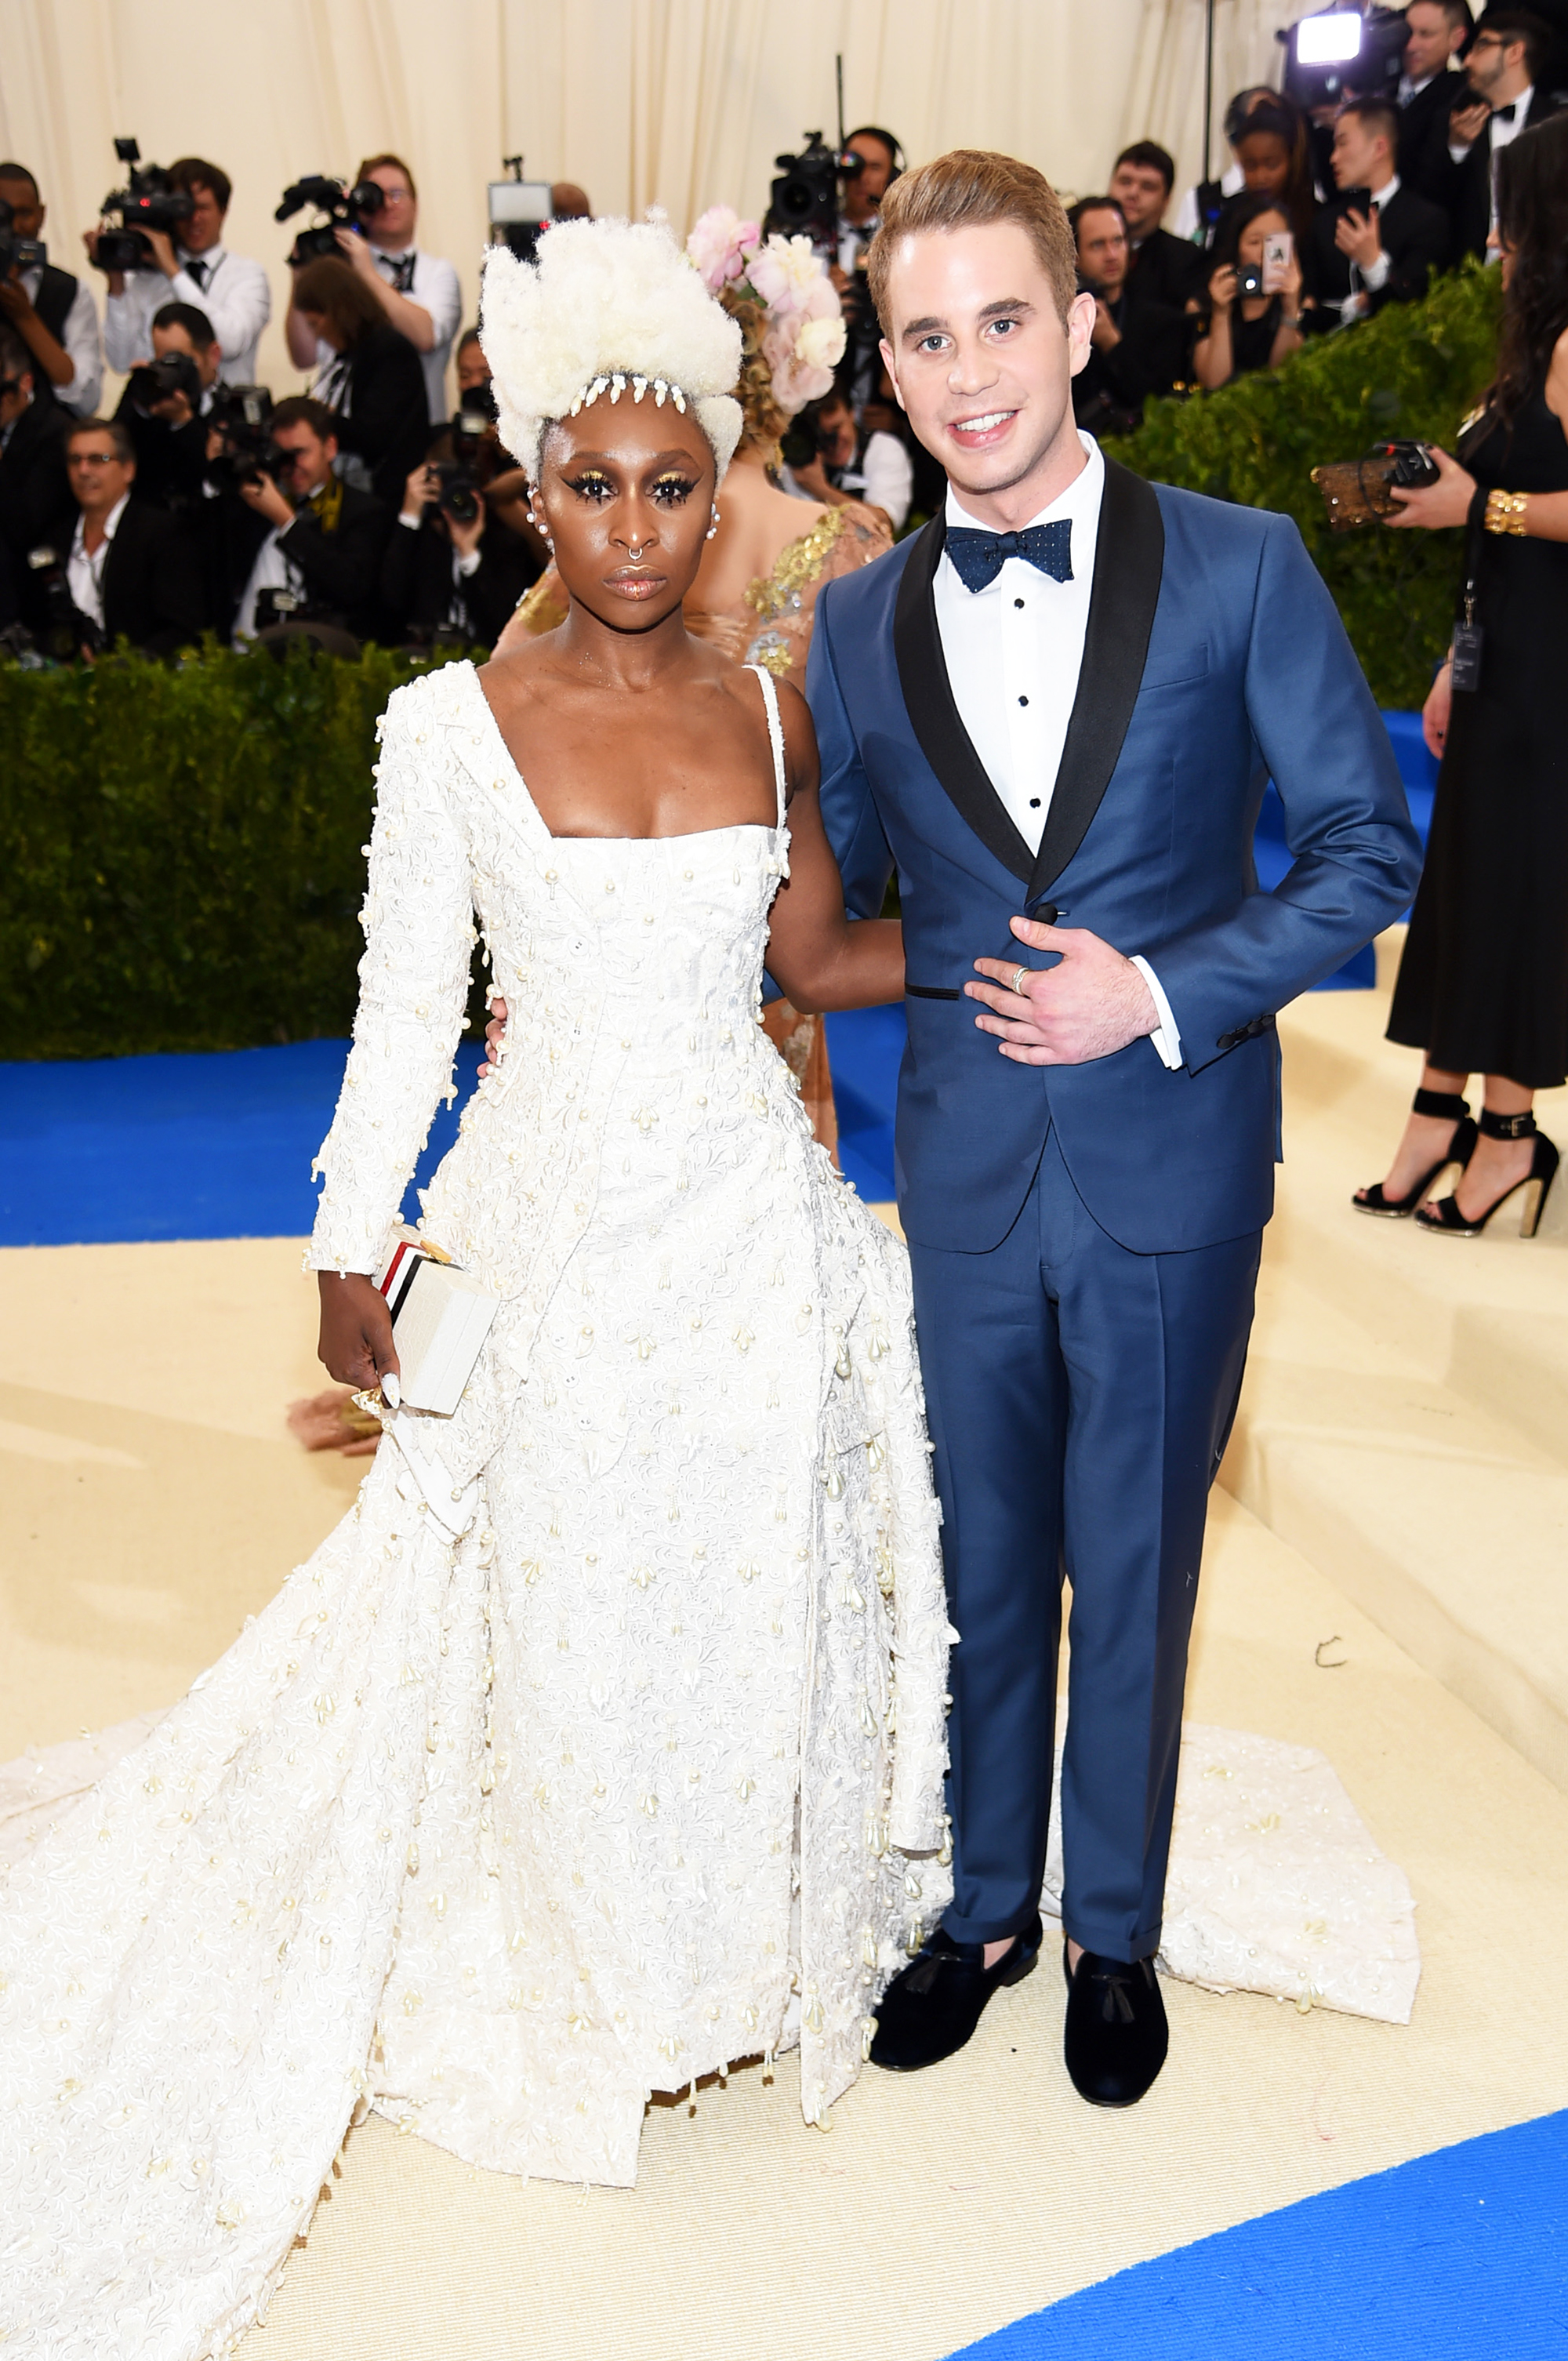 Cynthia Erivo and Ben Platt attend The Metropolitan Museum of Art's Costume Institute benefit gala celebrating the opening of the Rei Kawakubo/Comme des Garçons: Art of the In-Between exhibition in New York City, on May 1, 2017.